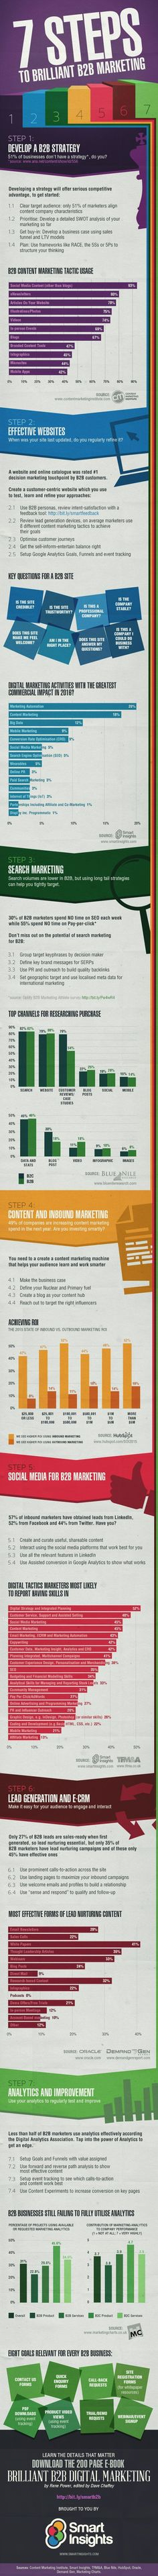 7 Steps to Brilliant B2B Digital Marketing 2015  Also Read: http://www.solvemyhow.com/2017/01/milesweb-or-bigrock-who-is-best-vps.html